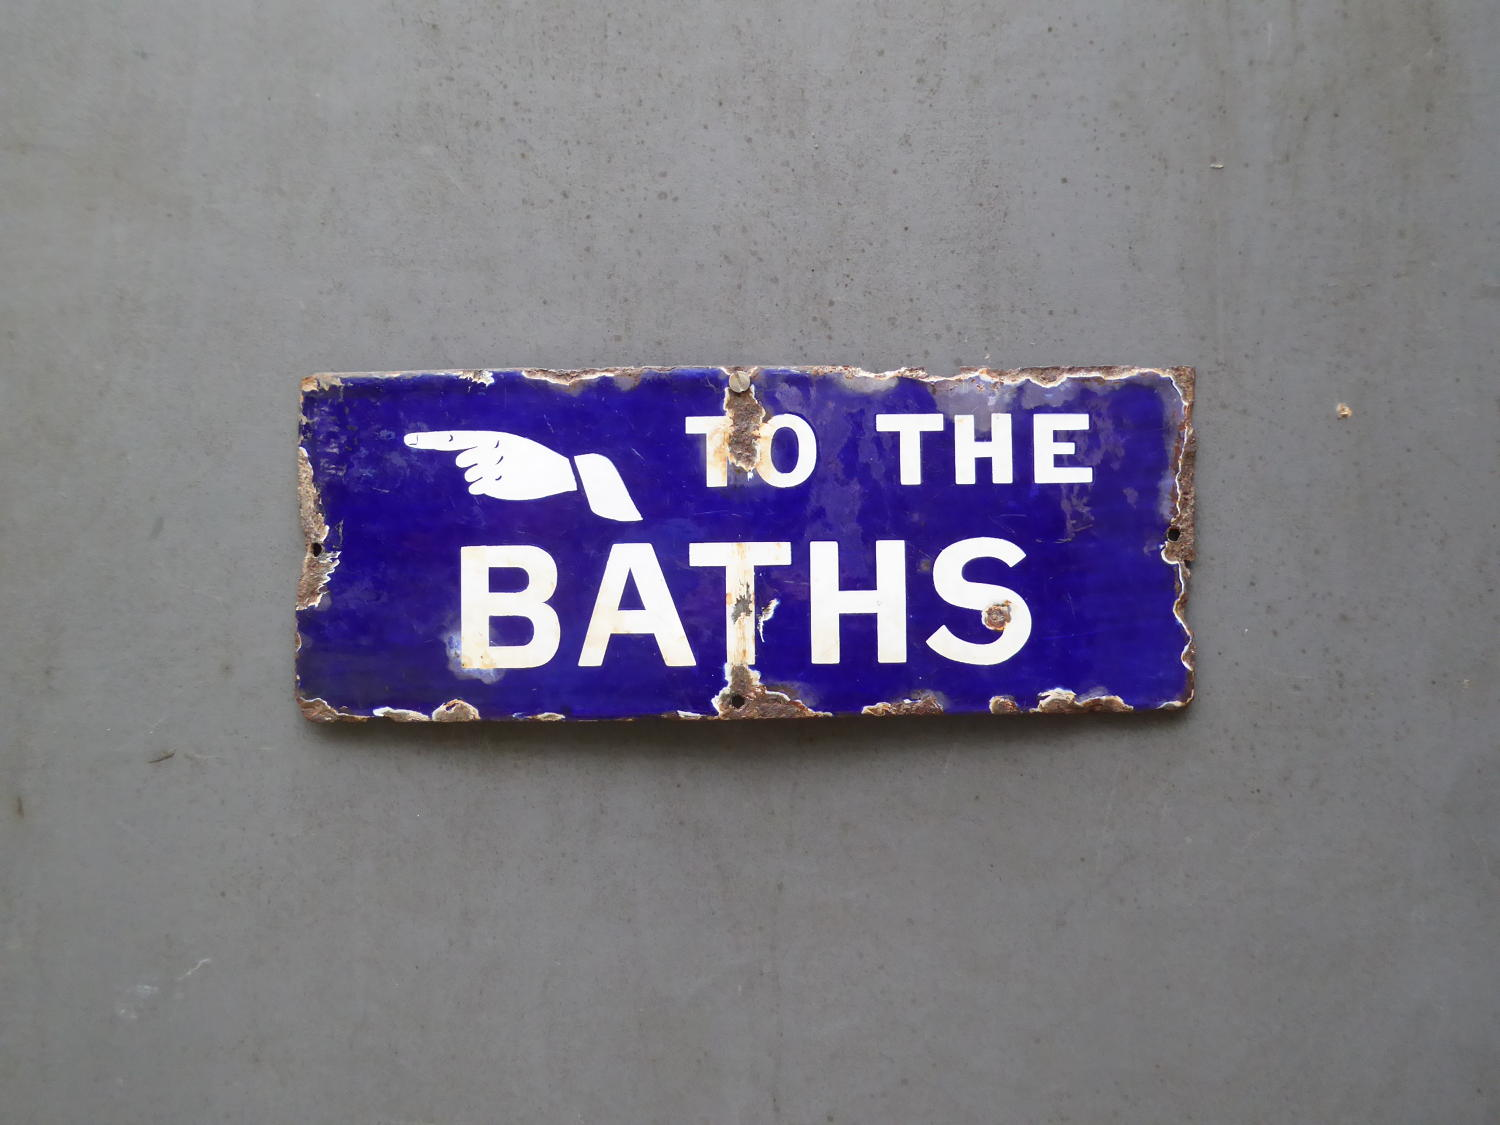 'To The Baths'